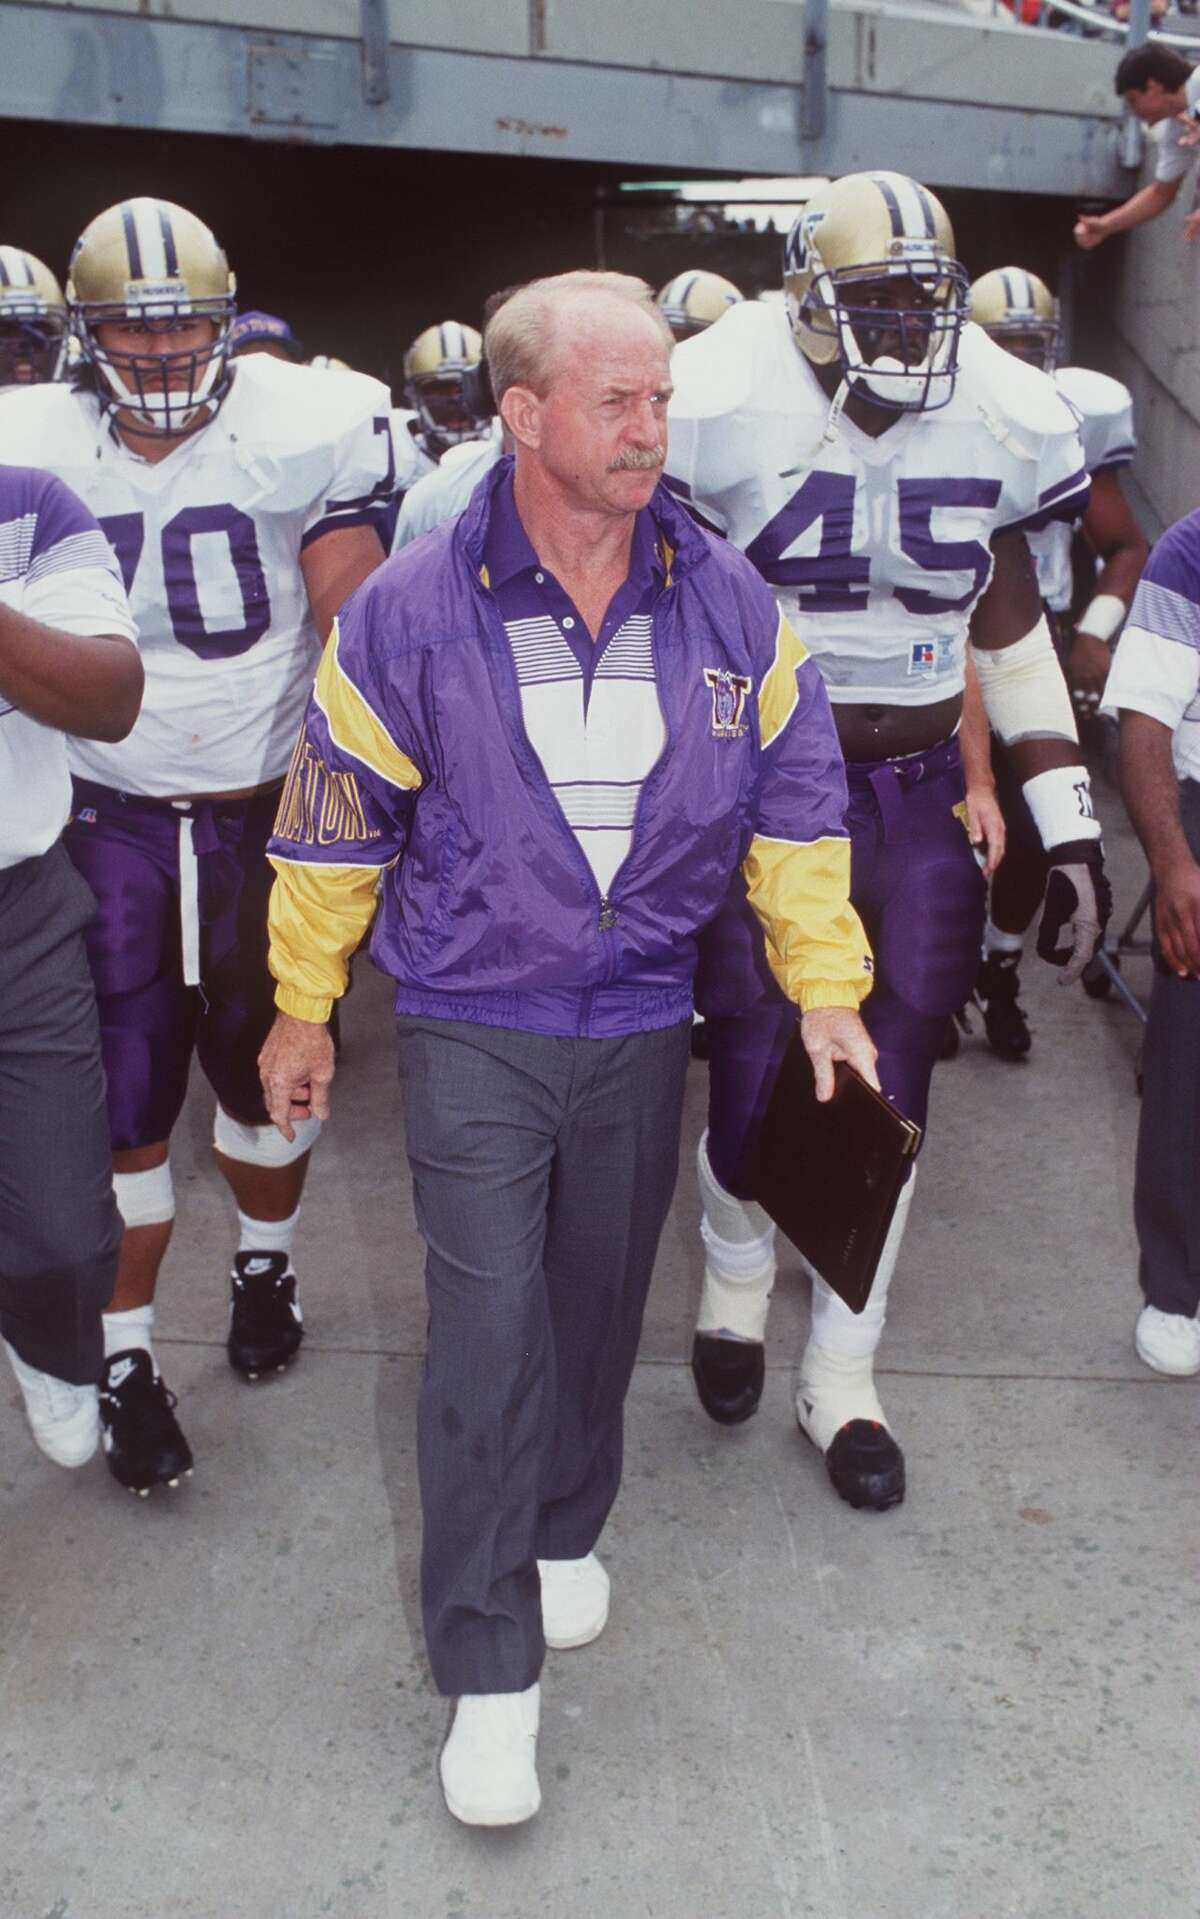 1995 SEASON As the Huskies head coach from 1993 to 1998, Lambright had his best win-loss record in '96 (9-3). But '95 was essentially his best year leading the program. Washingon that season won a share of the Pac-10 title, his only conference championship as head coach. The Huskies went 7-4-1 overall and 6-1-1 in conference play. Lambright complied a 44-25-1 record in six years as head coach, with no losing seasons.